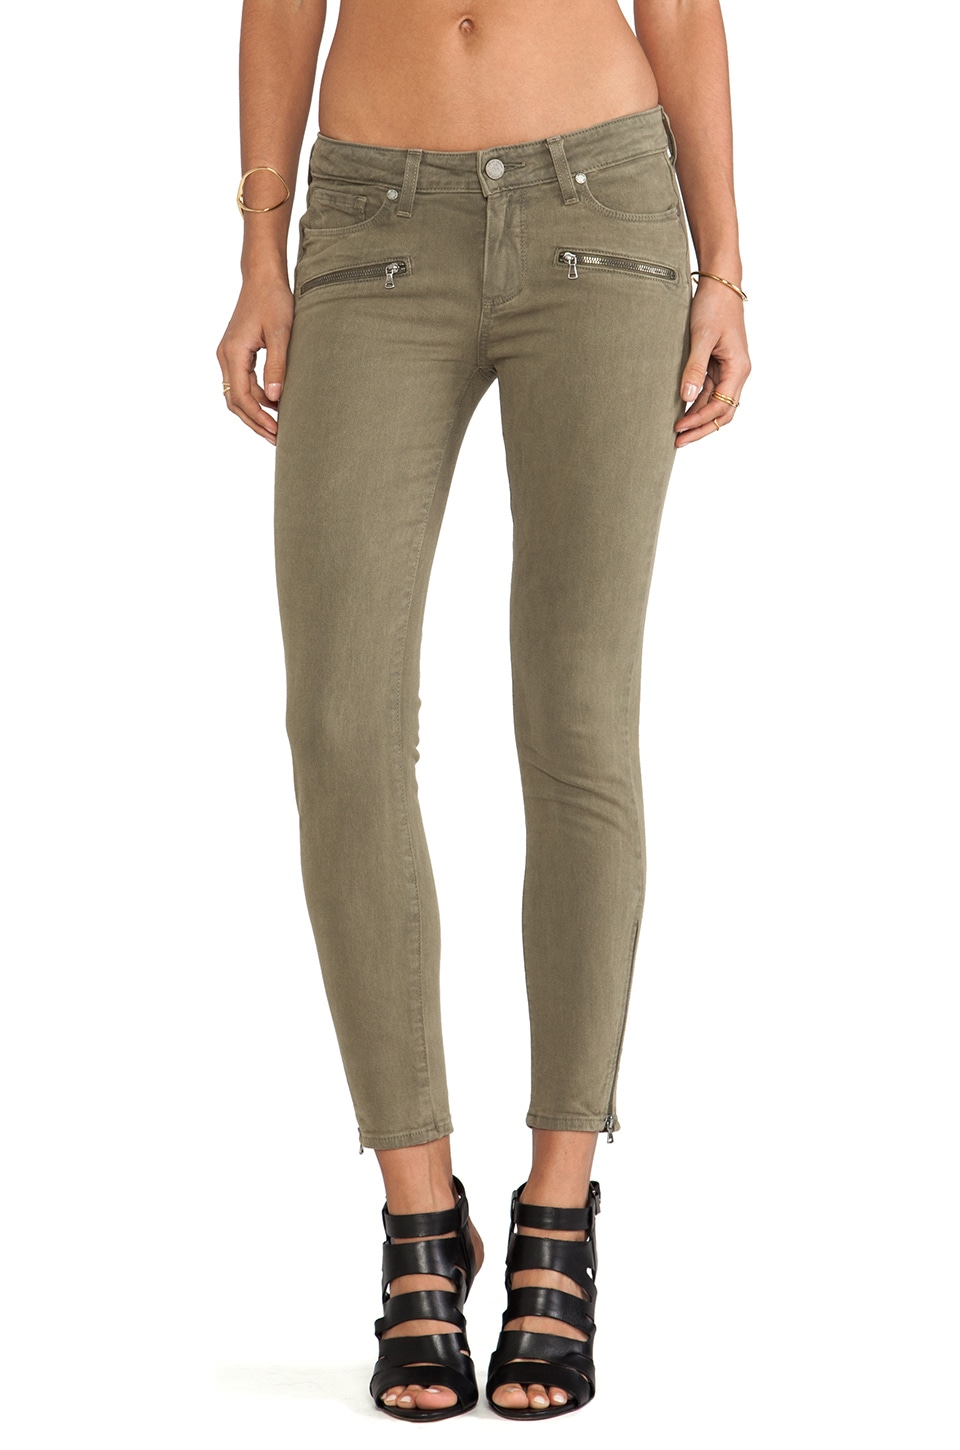 Paige Denim Jane Zip in Fatigue Green